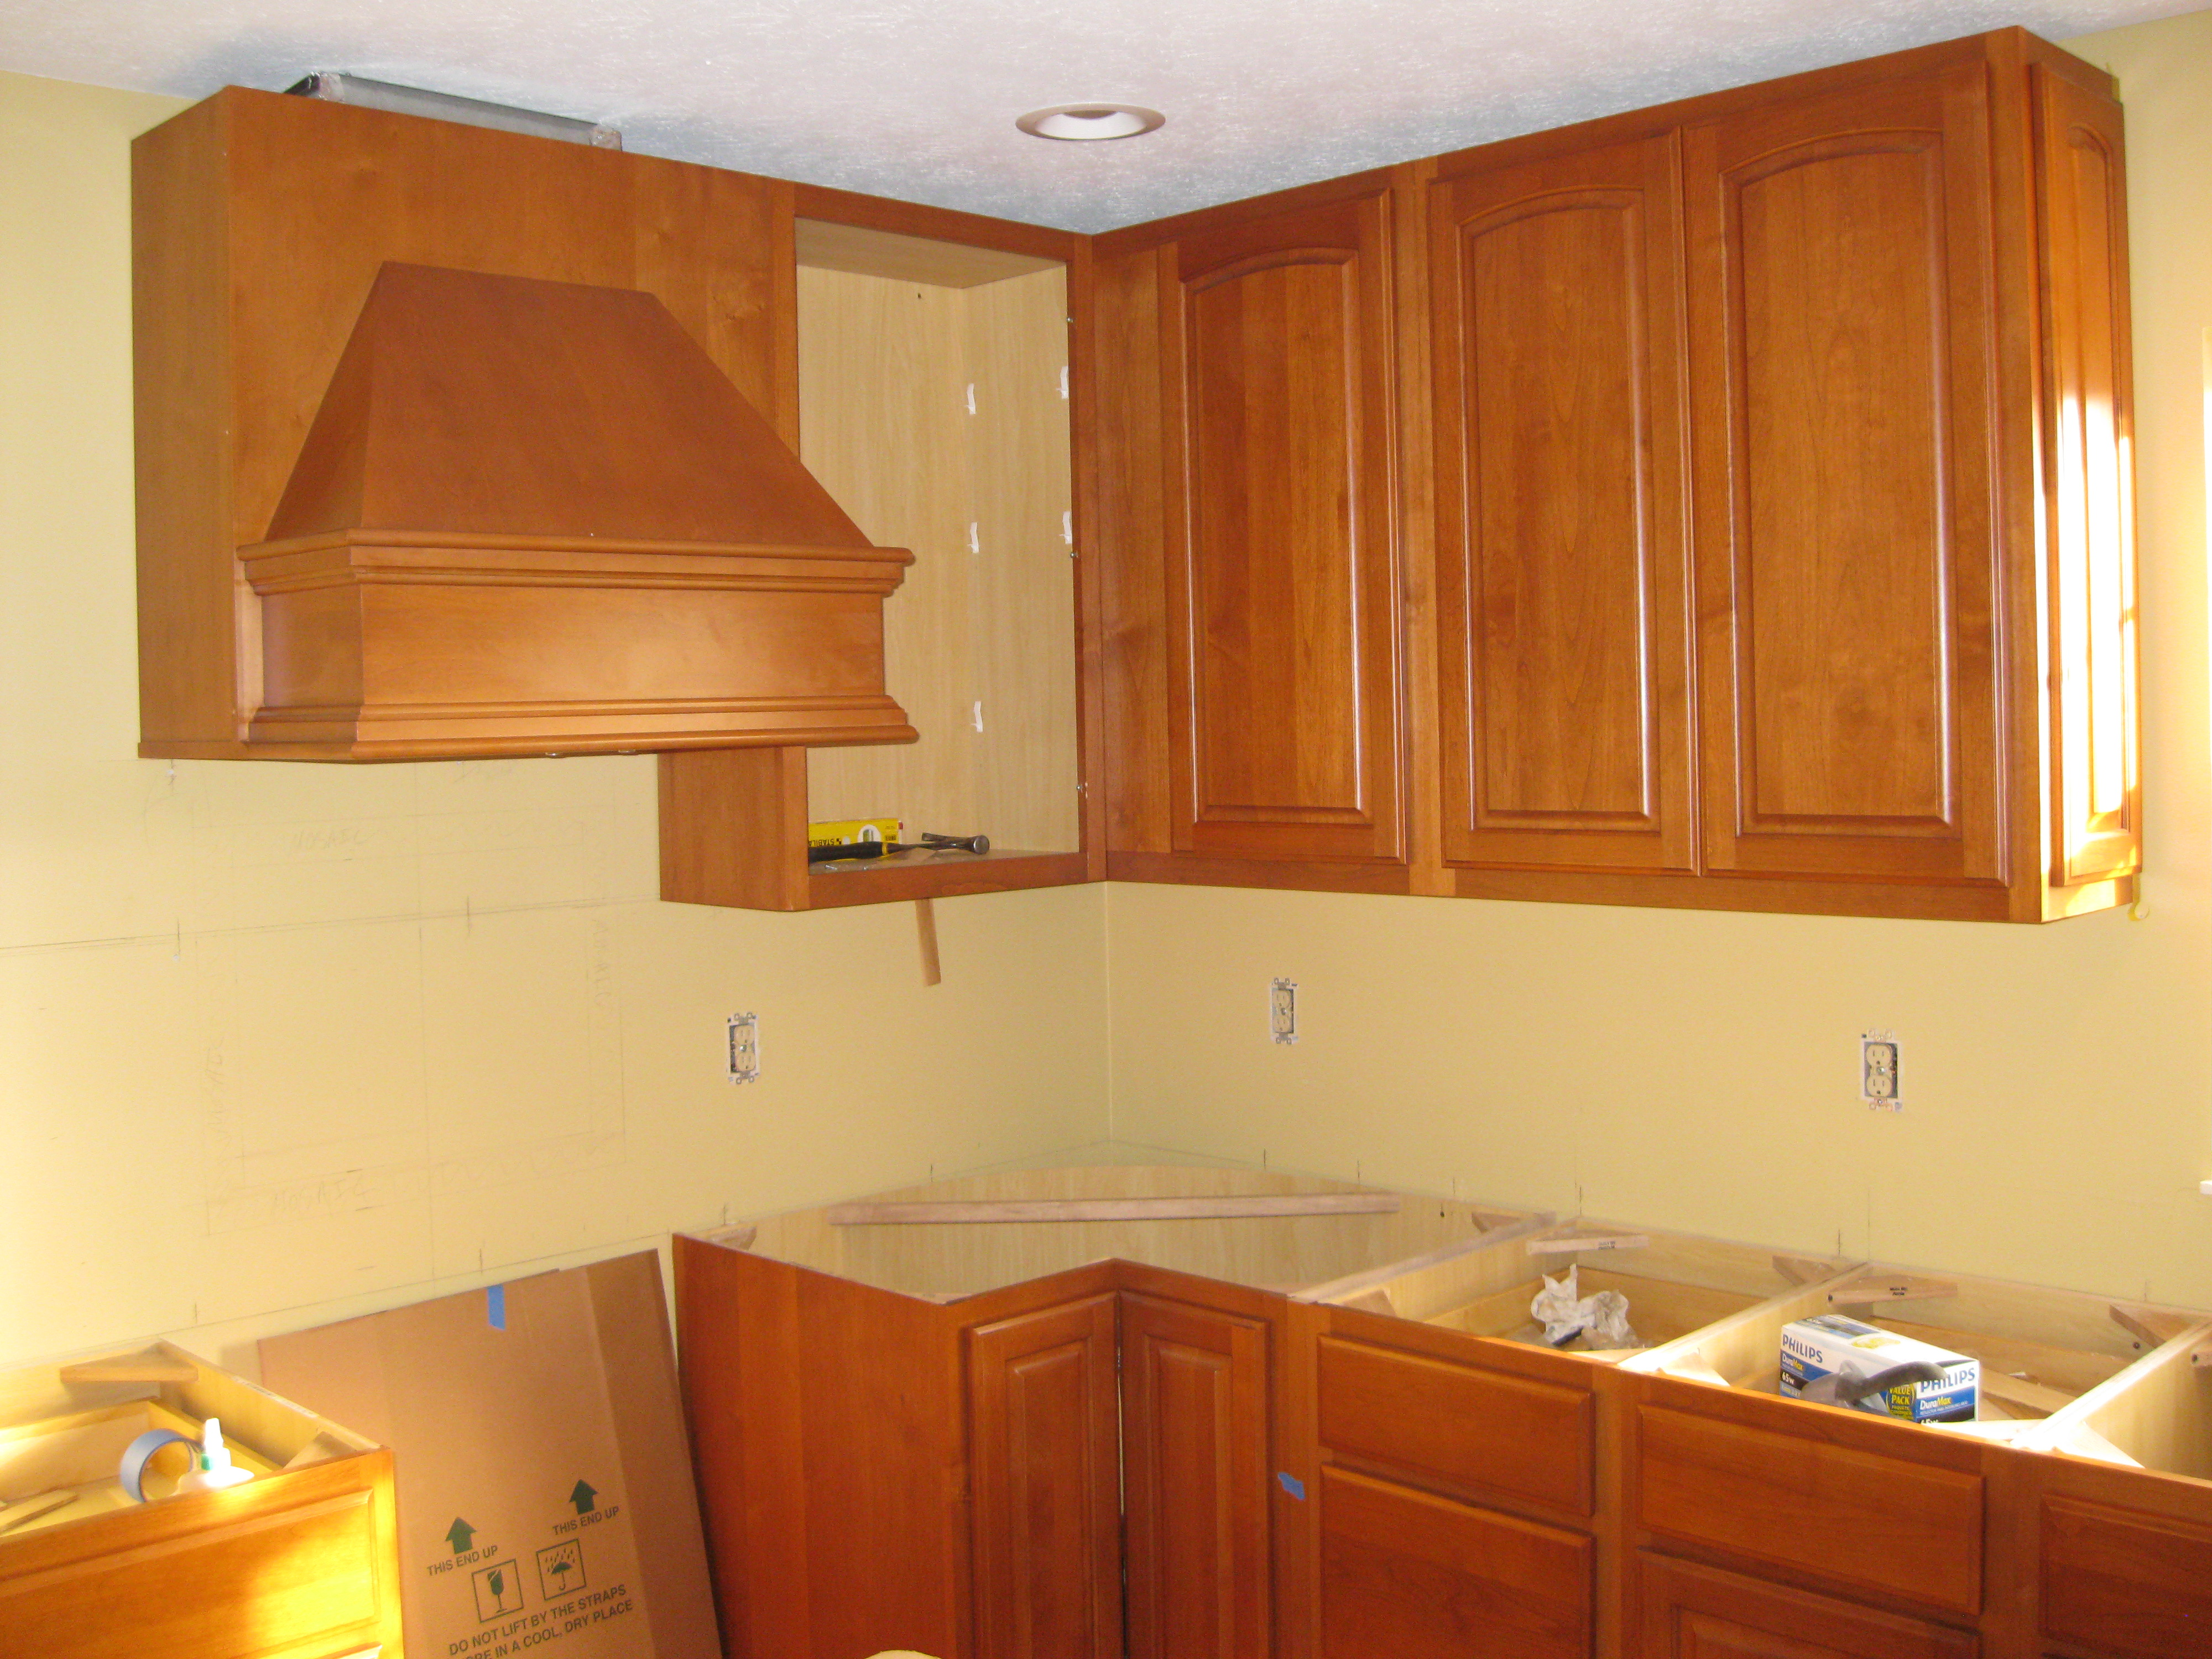 Pantry Cabinet Kitchen Wall Pantry Cabinet With Horizon